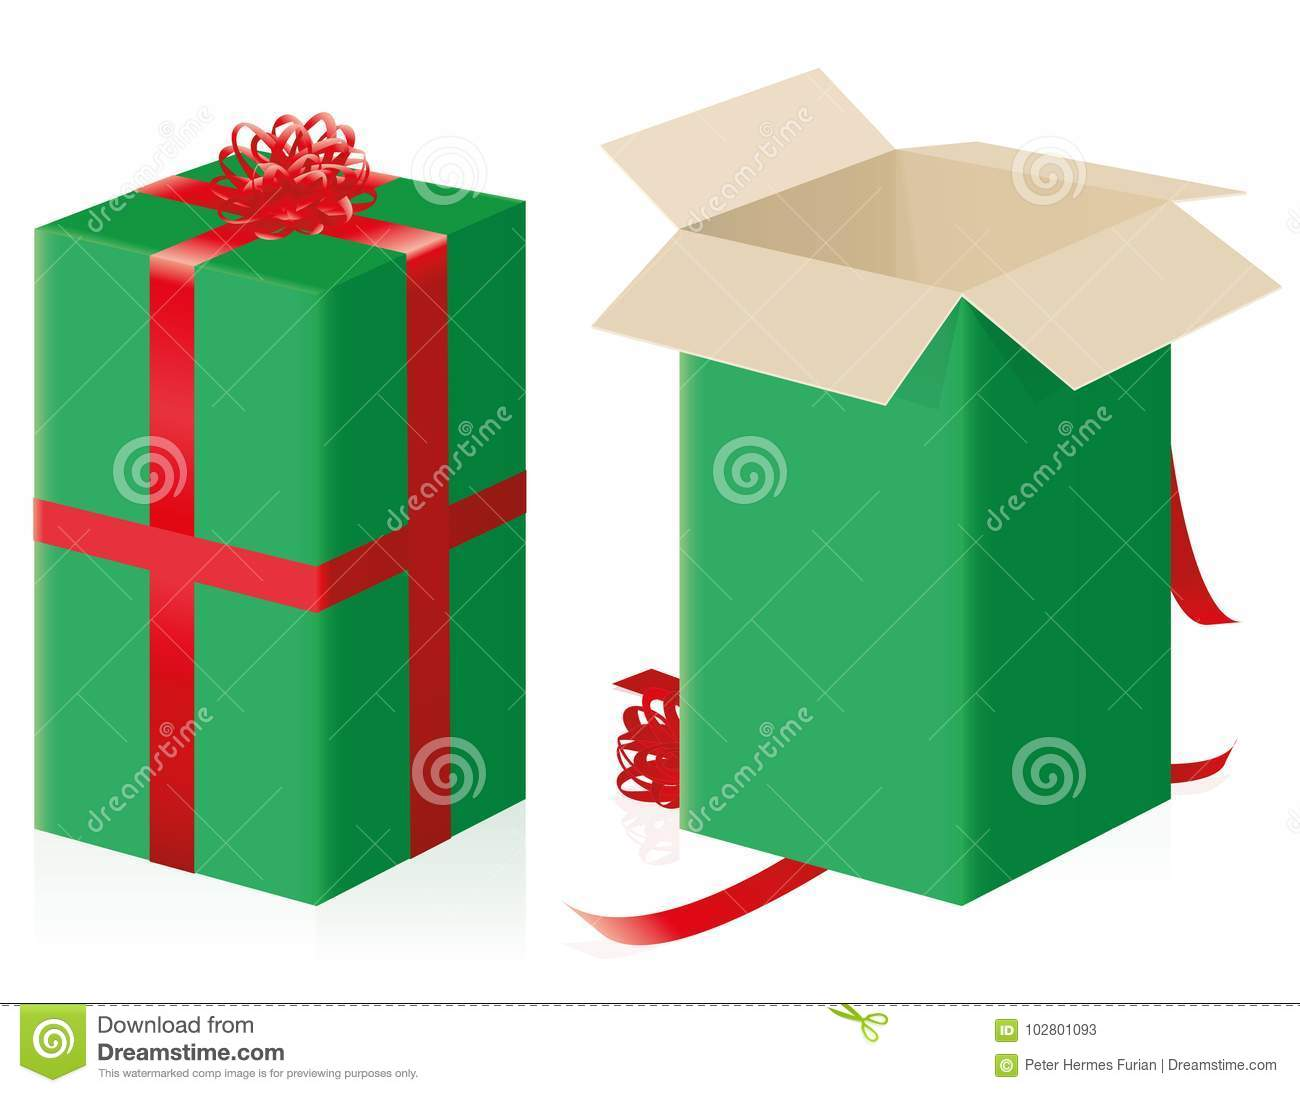 ff7a9a185284b Closed an opened gift package - high size parcel with green wrapping paper  and red ribbons - isolated vector illustration on white background.